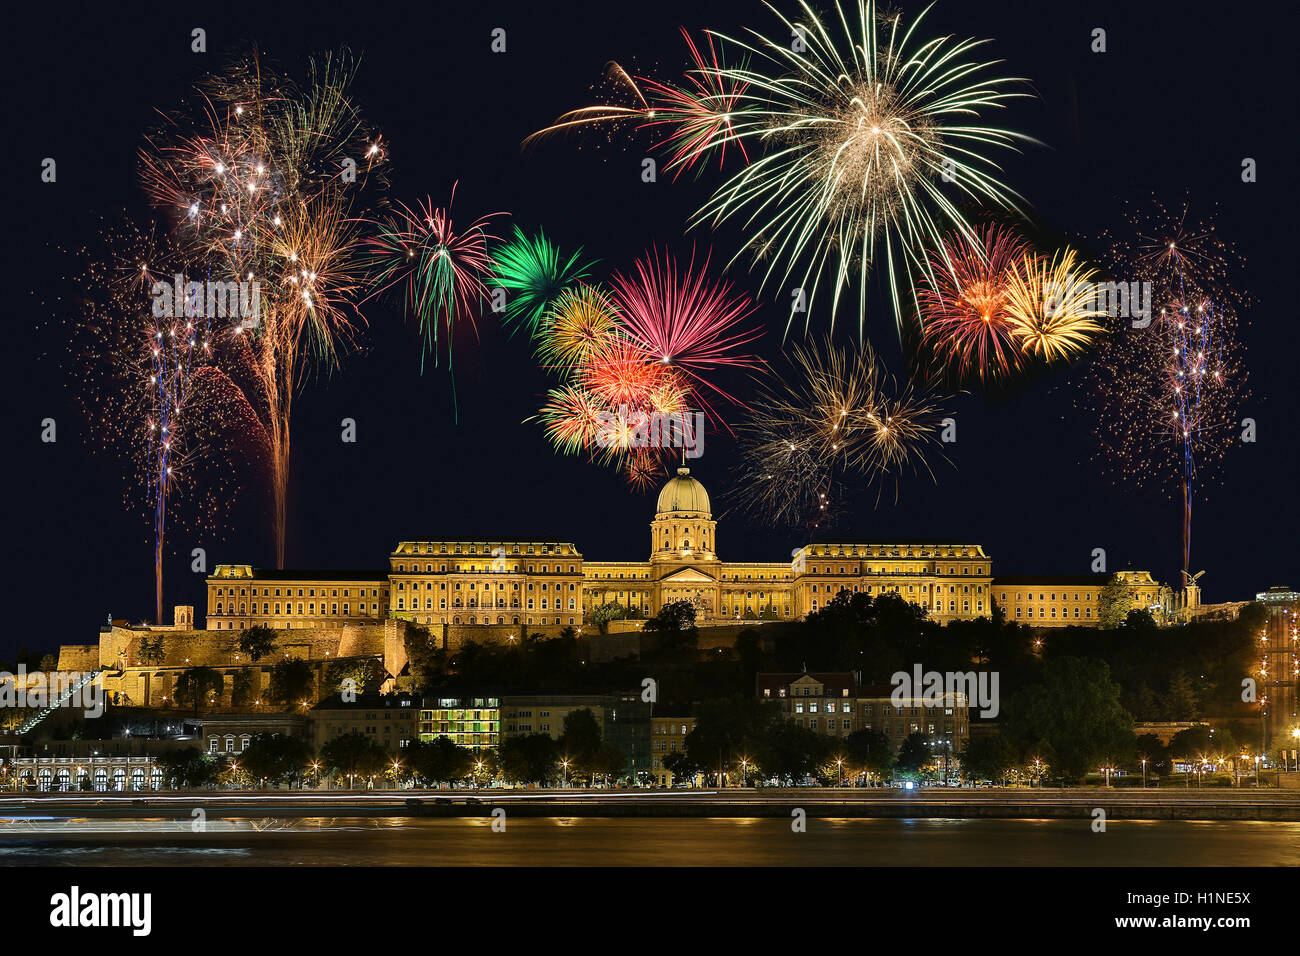 Fireworks display above Buda Castle or the Royal Palace in the city of Budapest in Hungary. - Stock Image